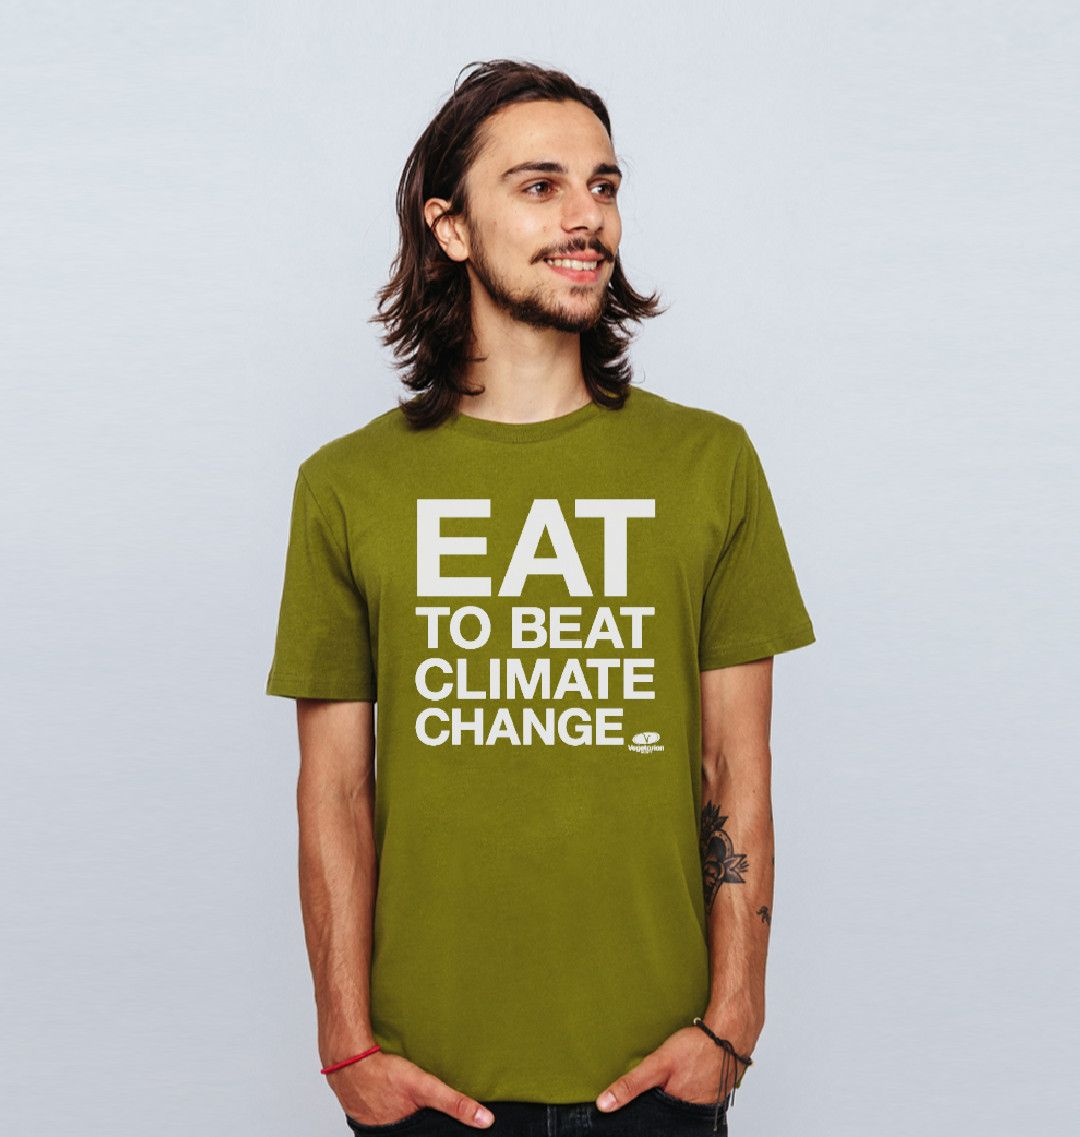 Our #EatToBeatClimateChange t-shirts raise awareness about how eating vegetarian food is good for the planet. Help us create a more sustainable future: